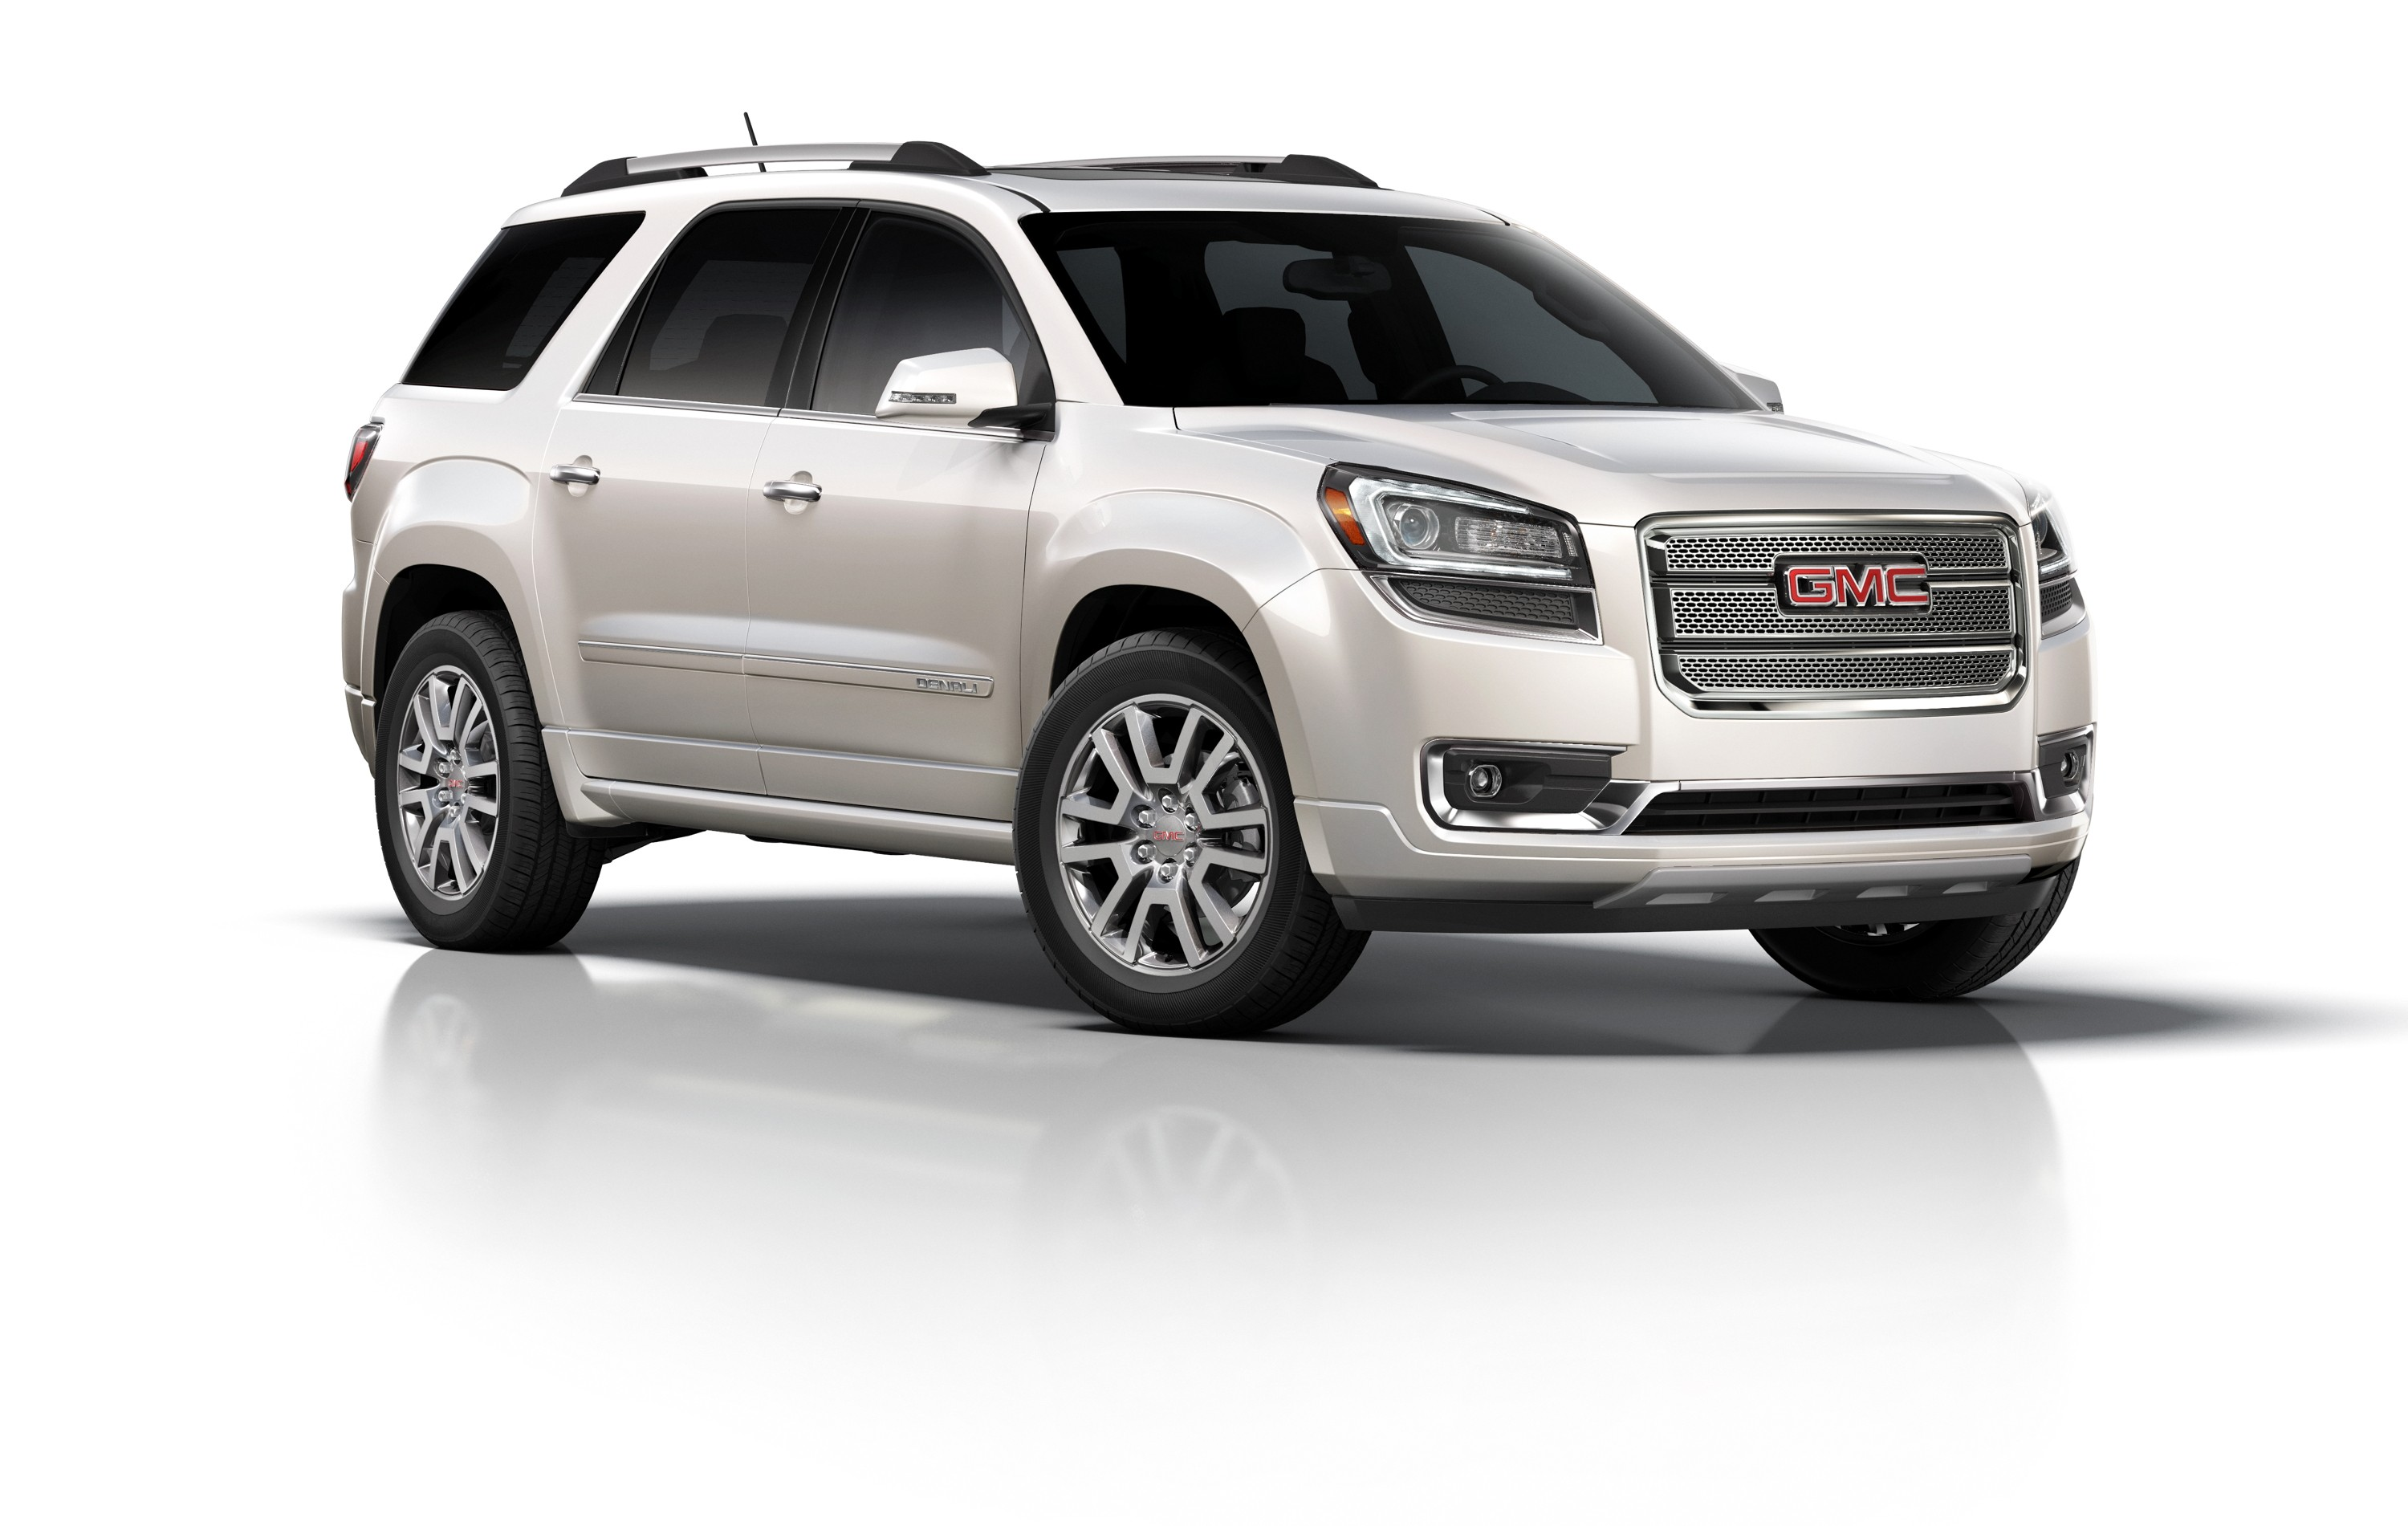 Gmc Latest Models >> 2016 GMC Acadia Introduced With OnStar 4G LTE - autoevolution